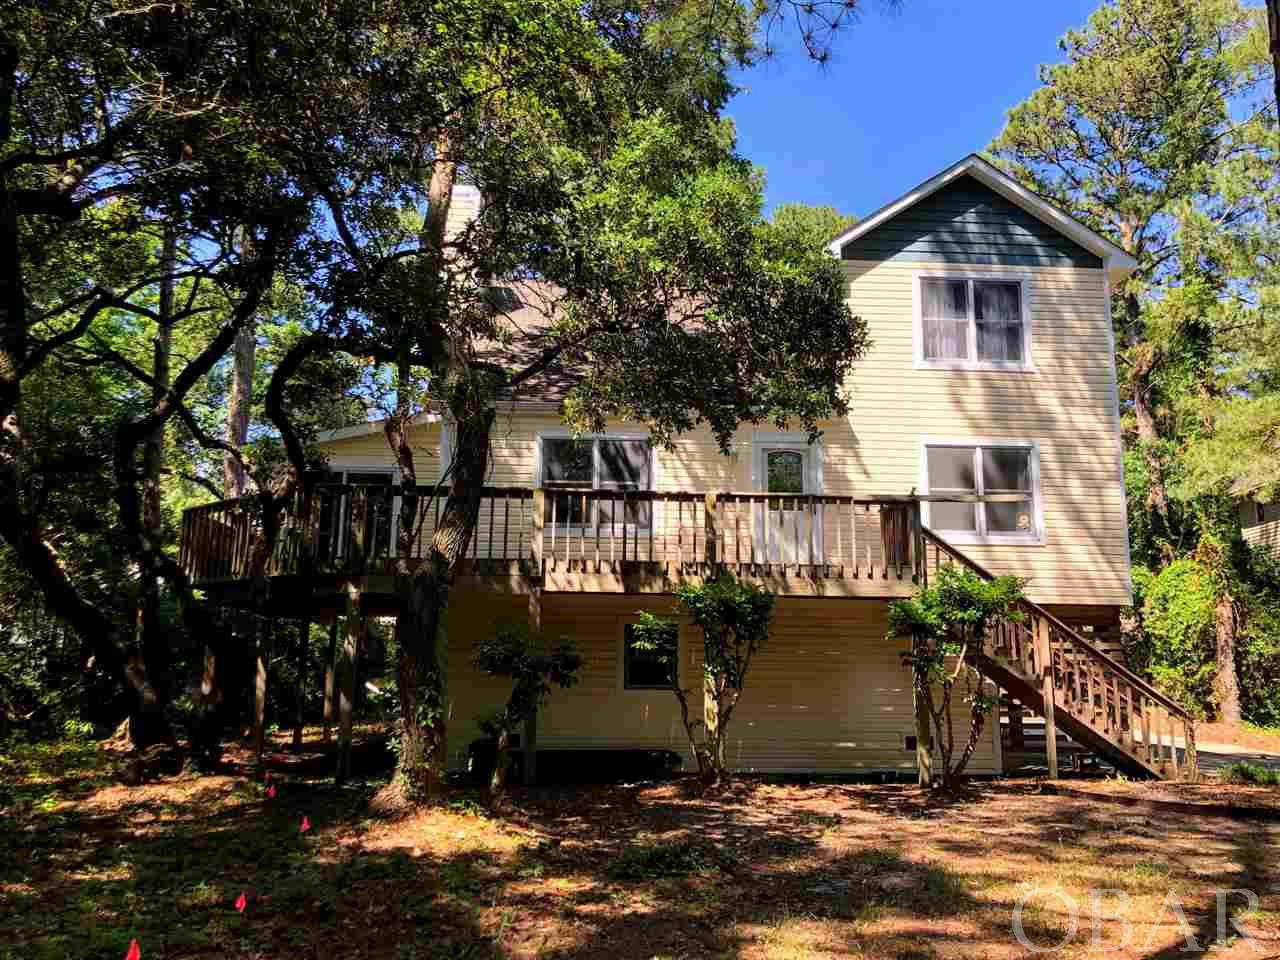 1513 Captains Lane, Kill Devil Hills, NC 27948, 4 Bedrooms Bedrooms, ,3 BathroomsBathrooms,Residential,For sale,Captains Lane,102956